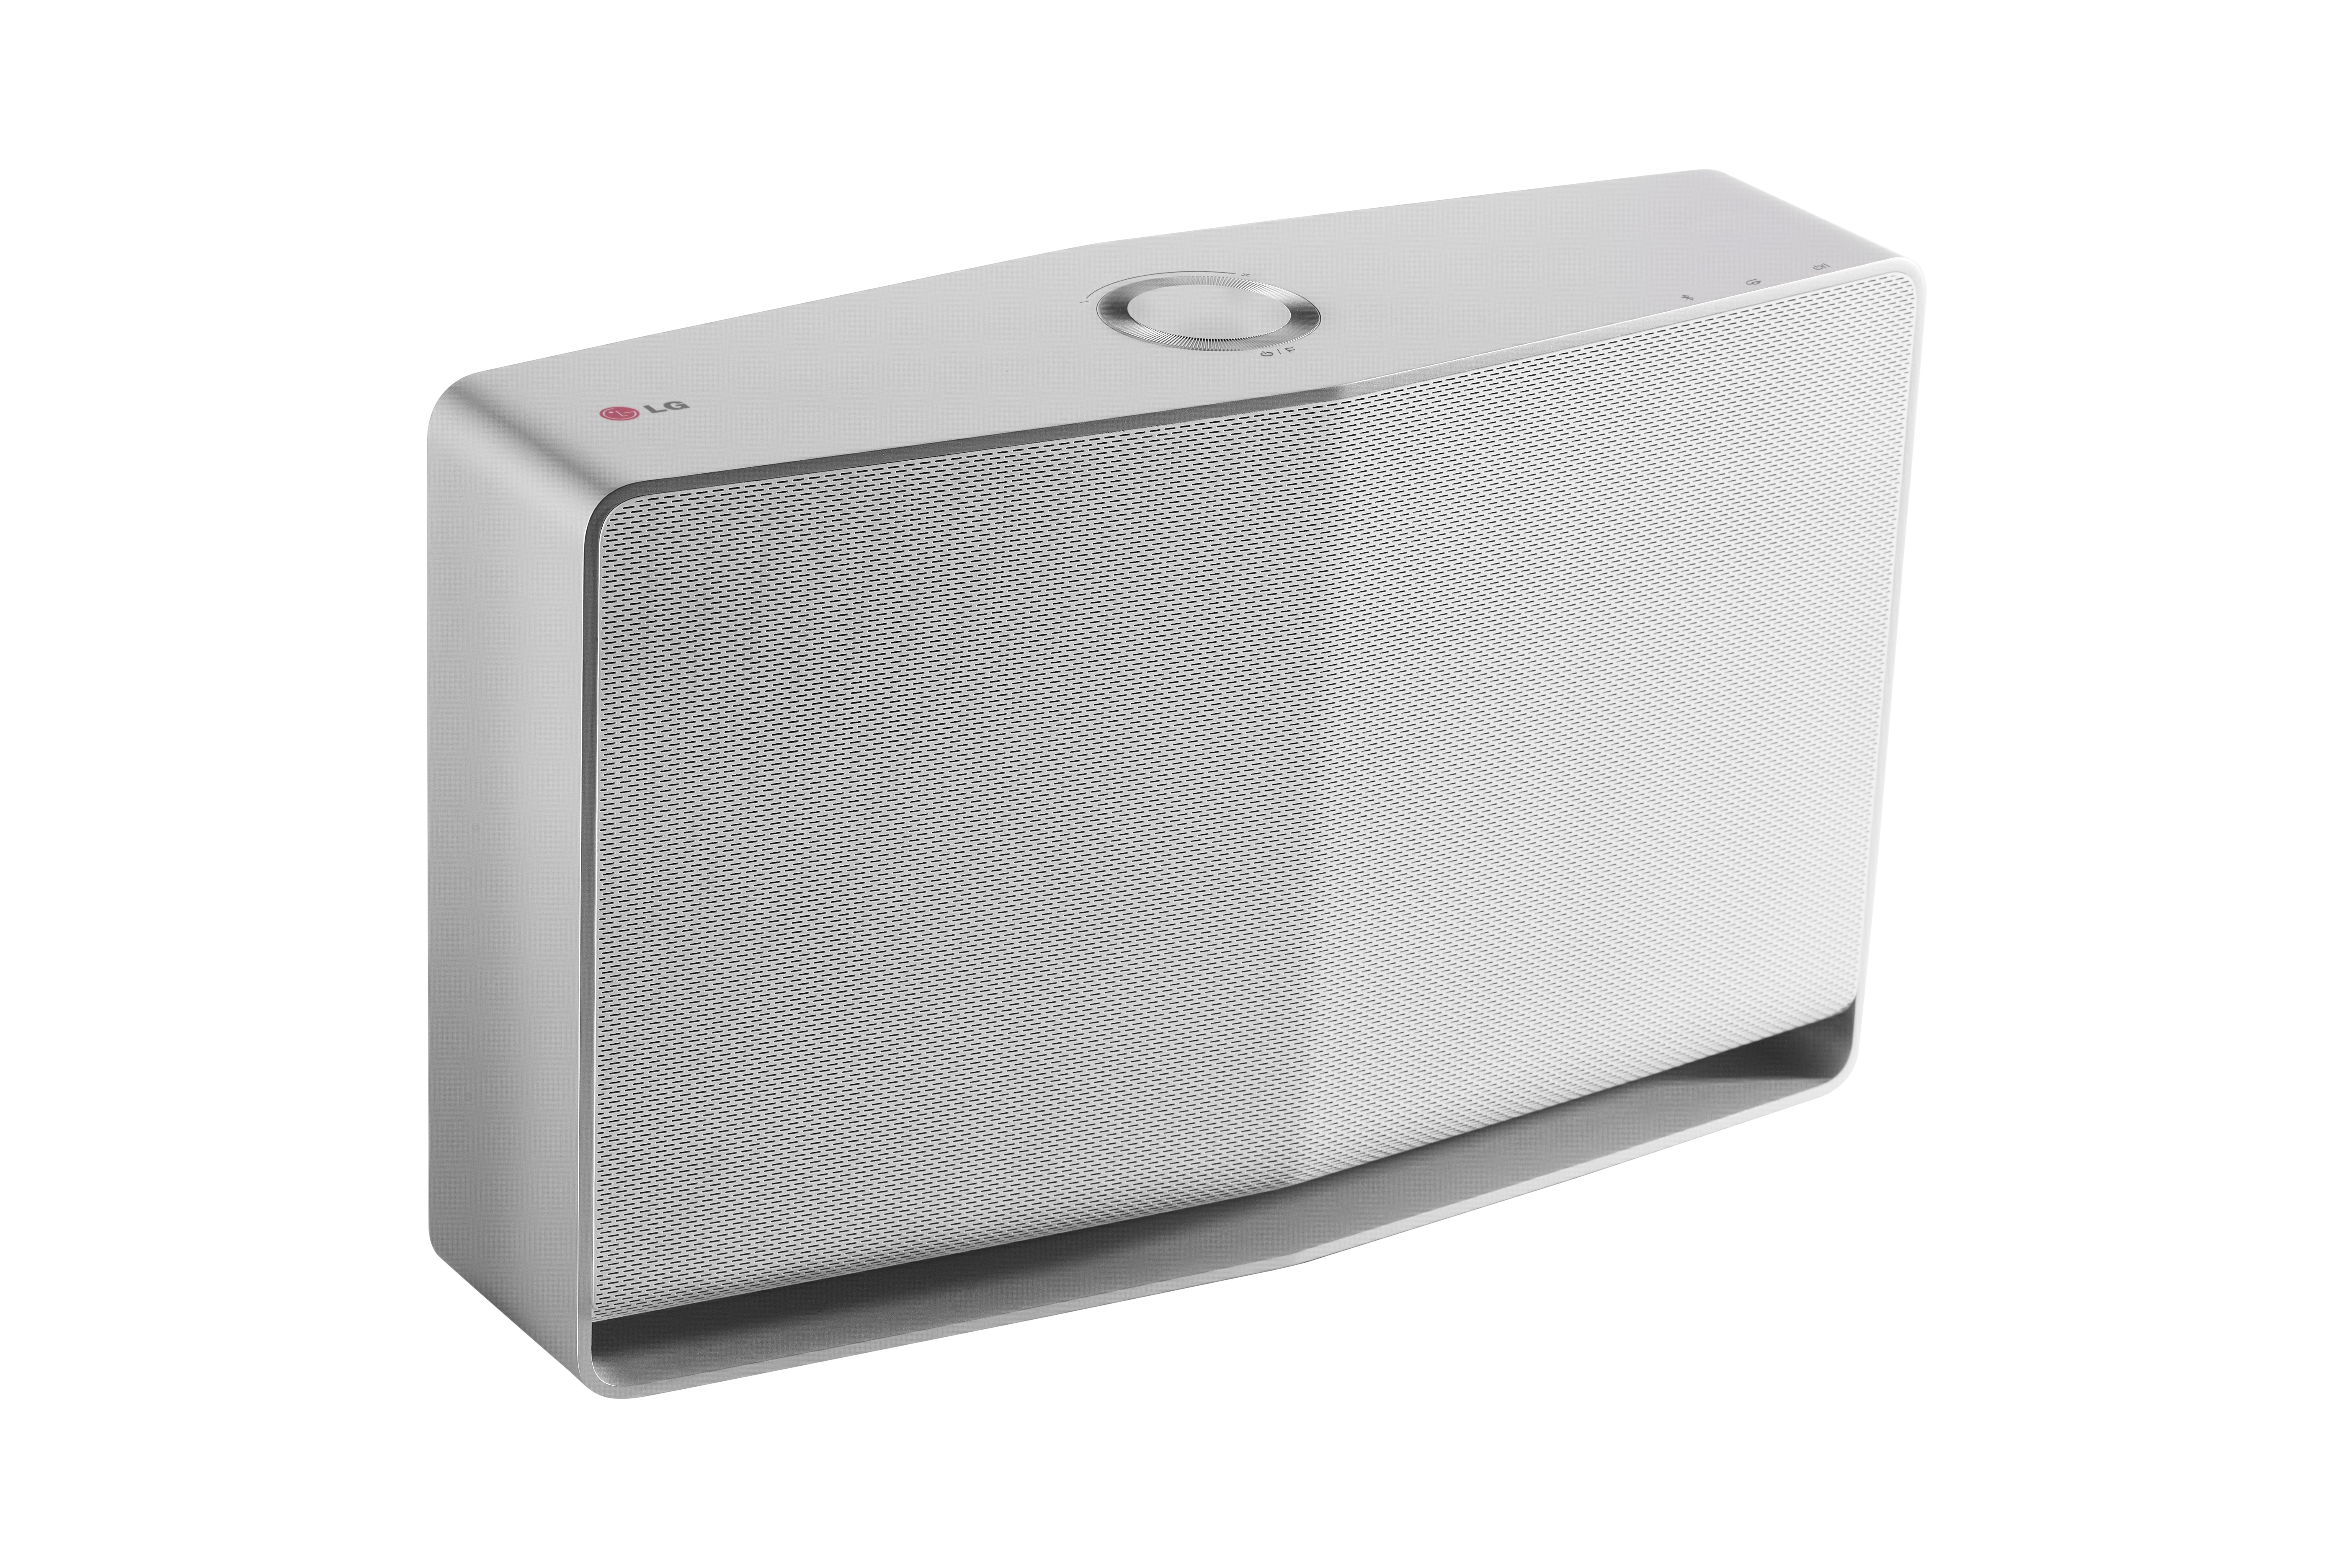 LG Wireless Audio System NP8740_Left-side View